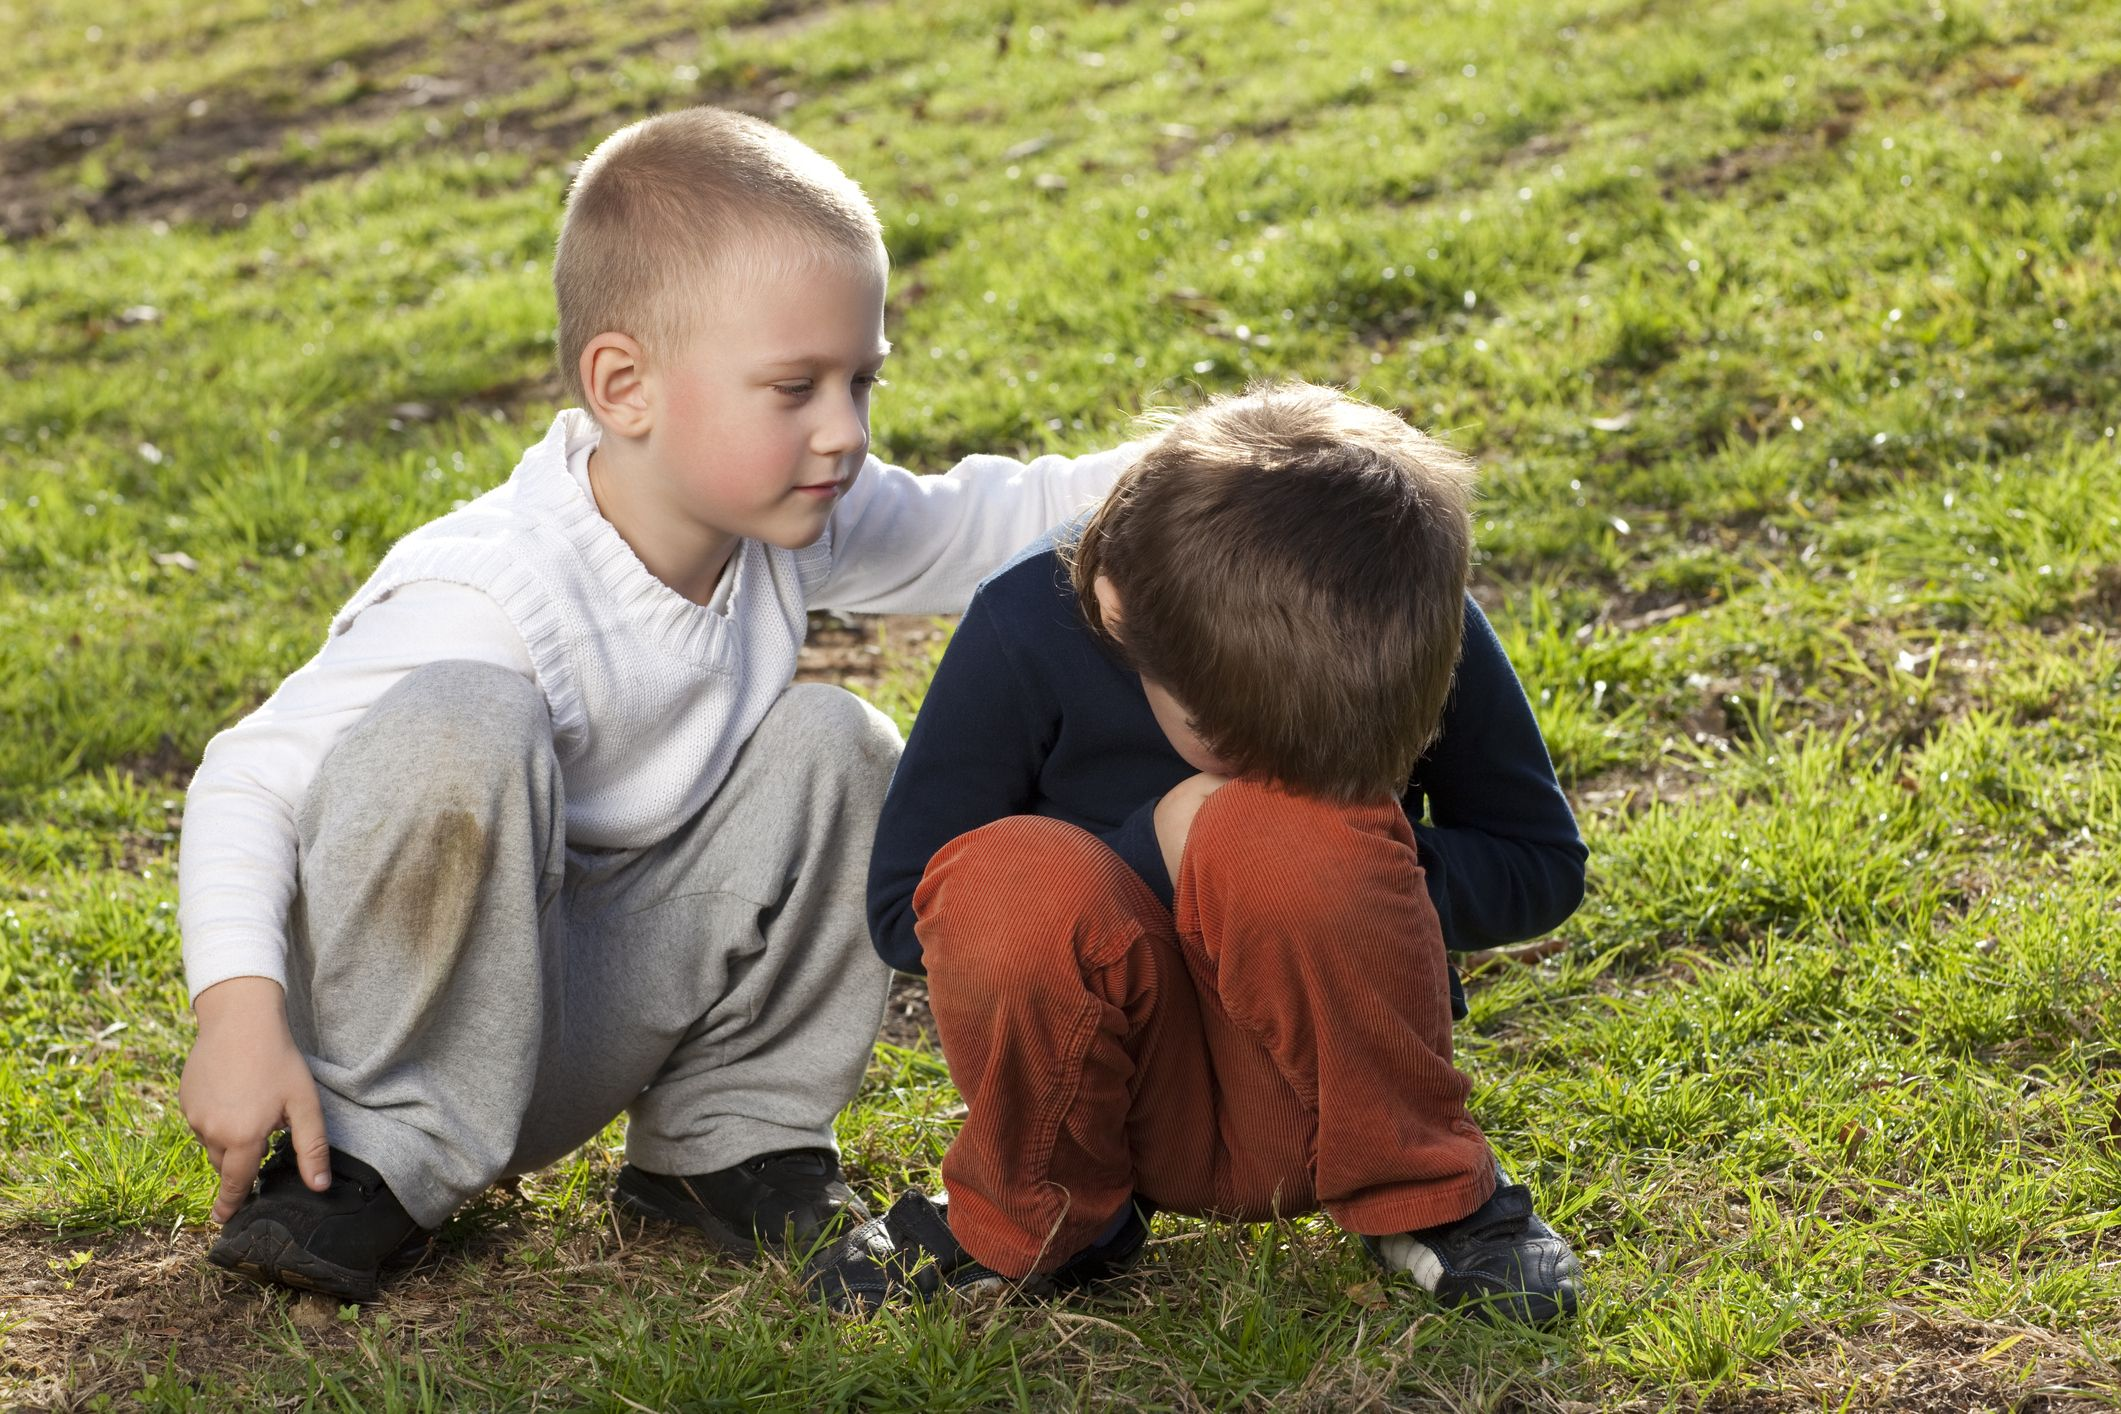 A little boy comforting his friend with empathy